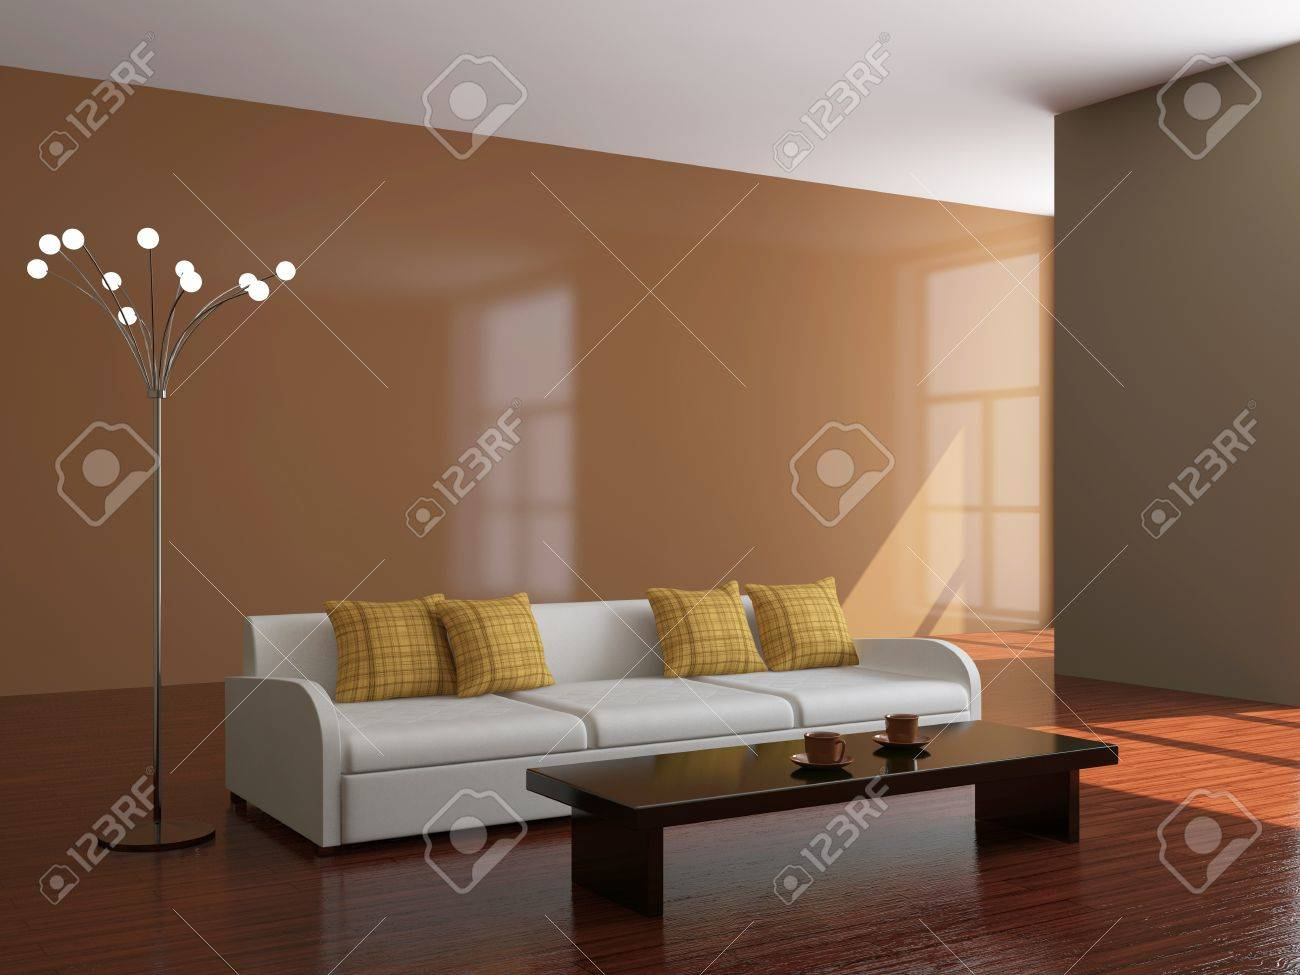 Sofa and a lamp in the big room Stock Photo - 15523283